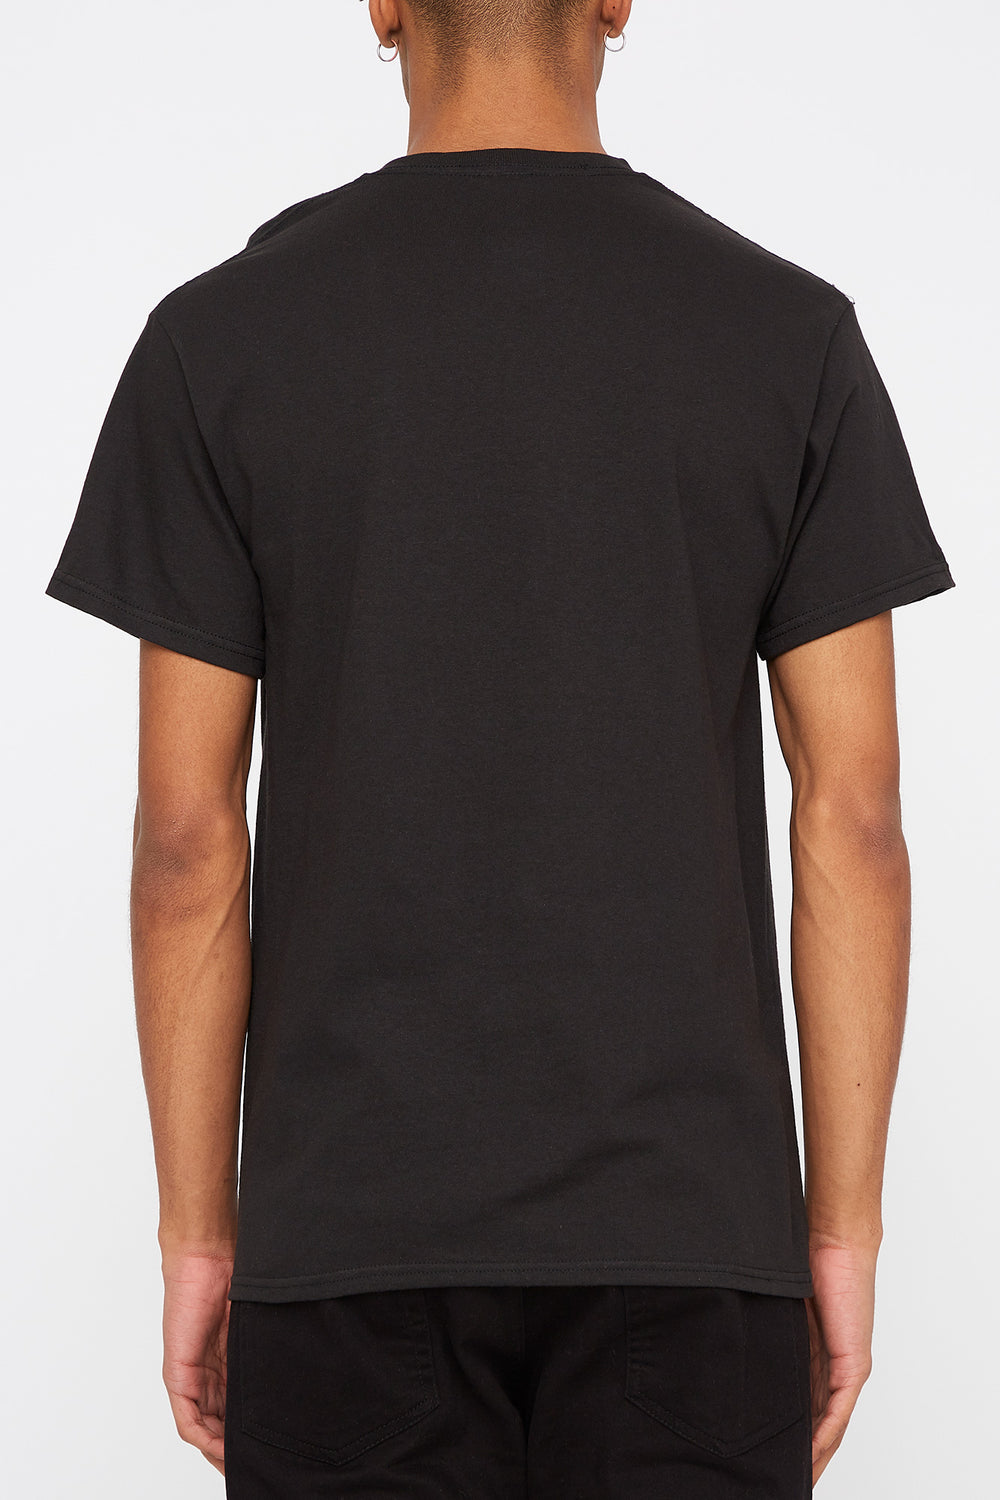 T-Shirt Logo Grizzly Homme Noir